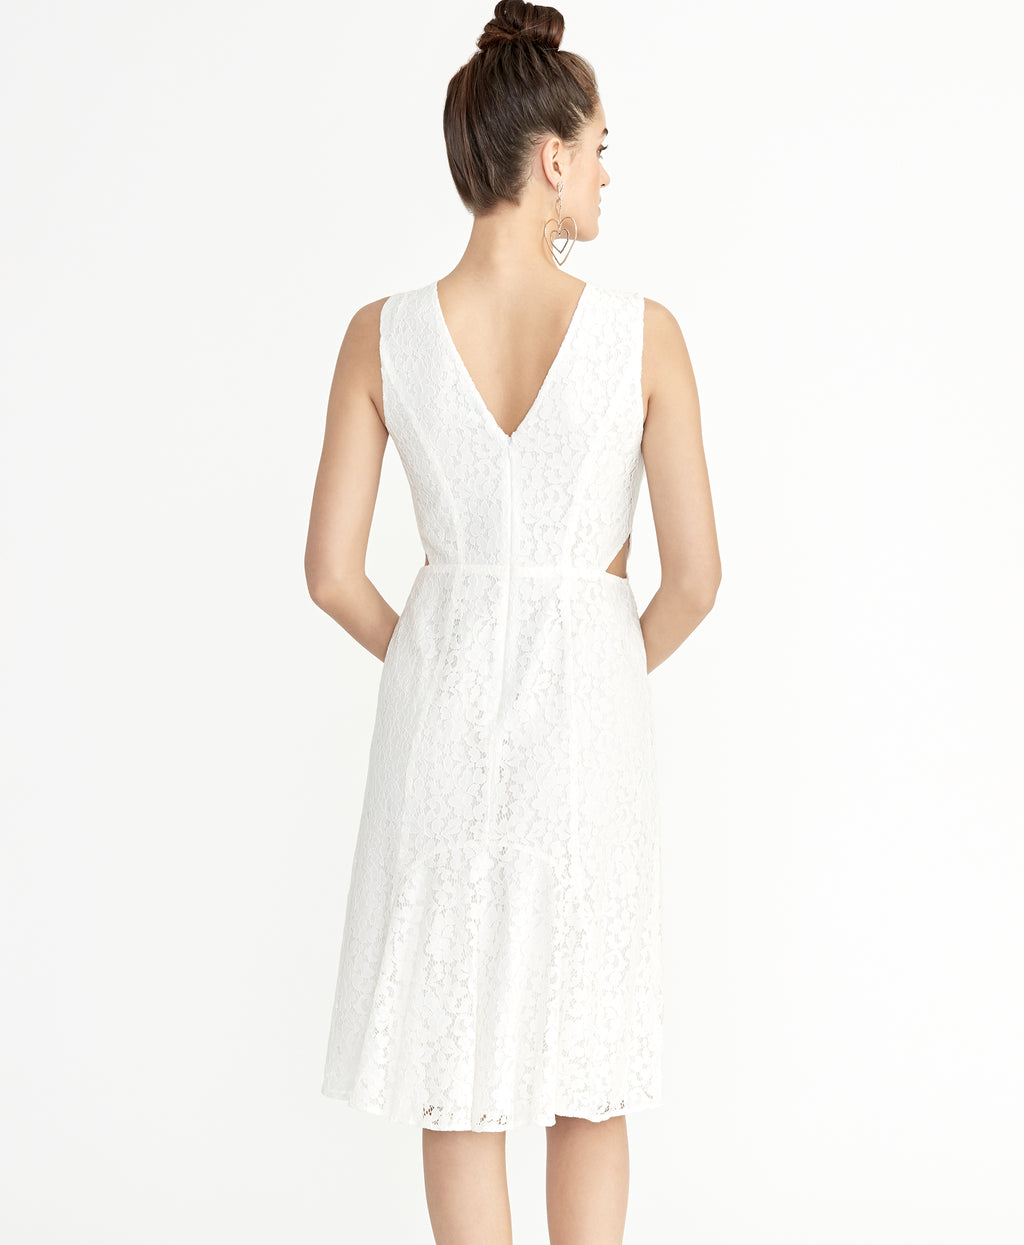 Elana Lace Dress | Eggshell